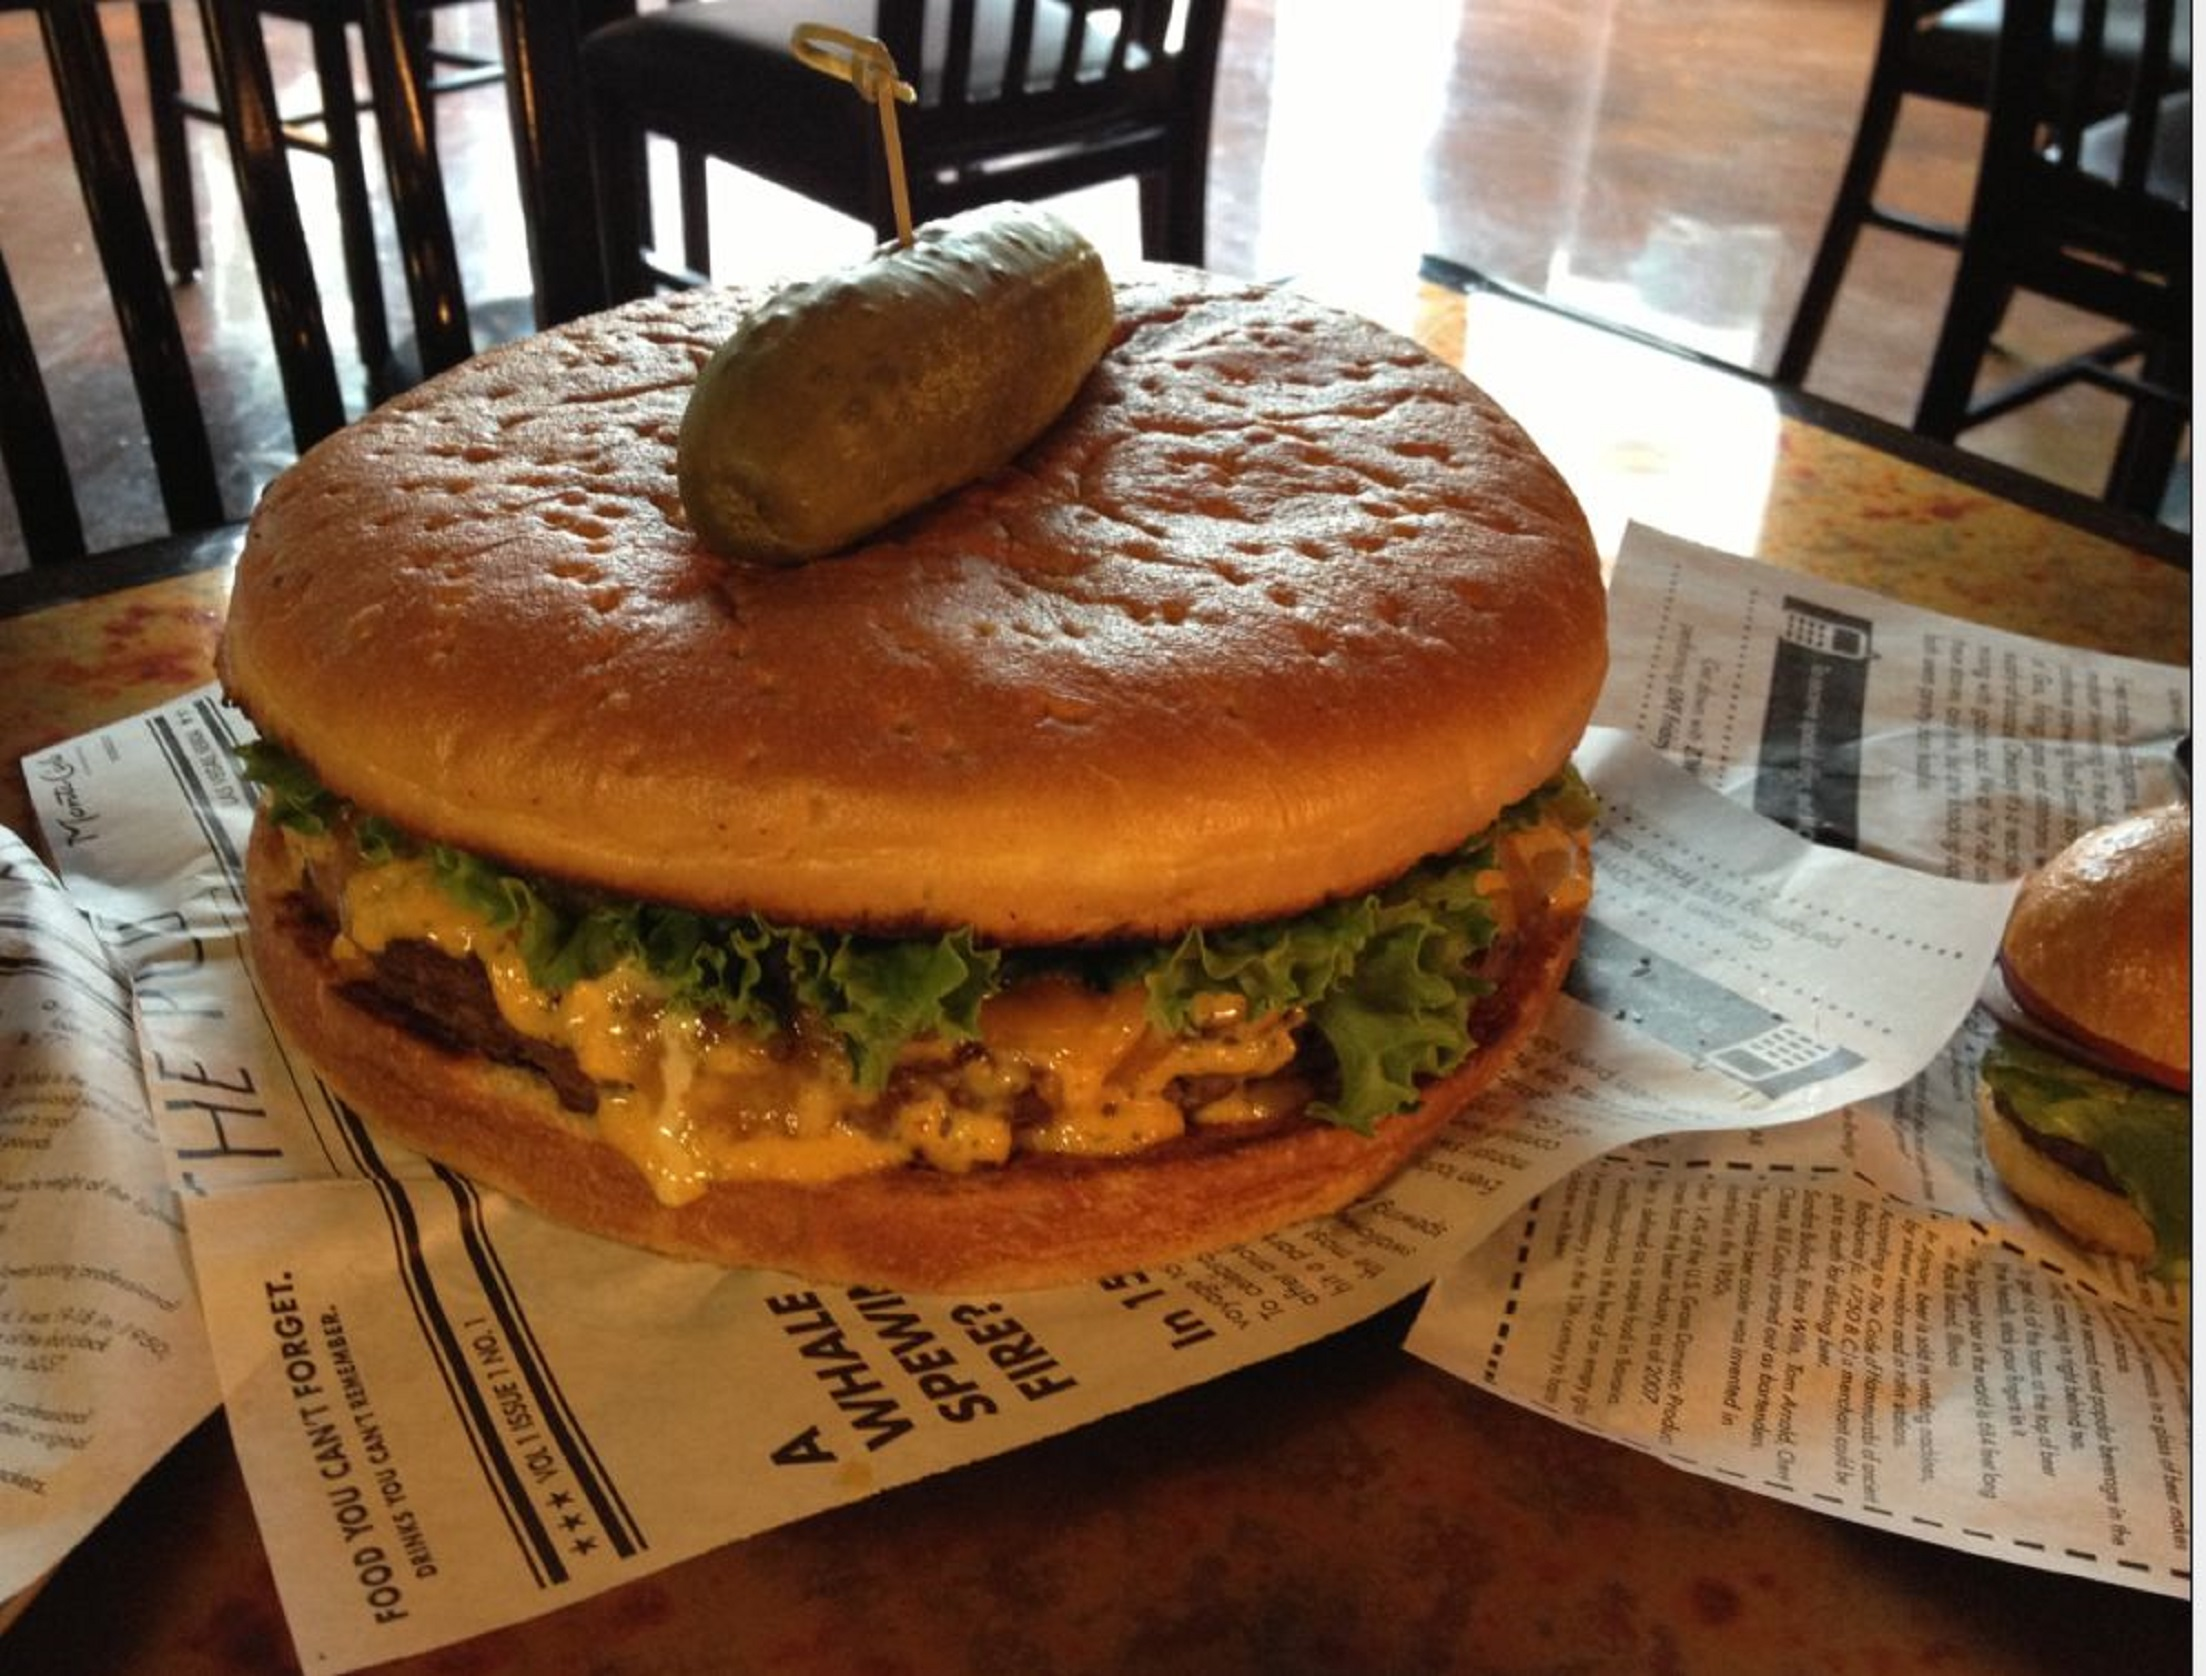 Hope you're hungry. The Pub Burger Challenge, photo courtesy of The Pub at Monte Carlo